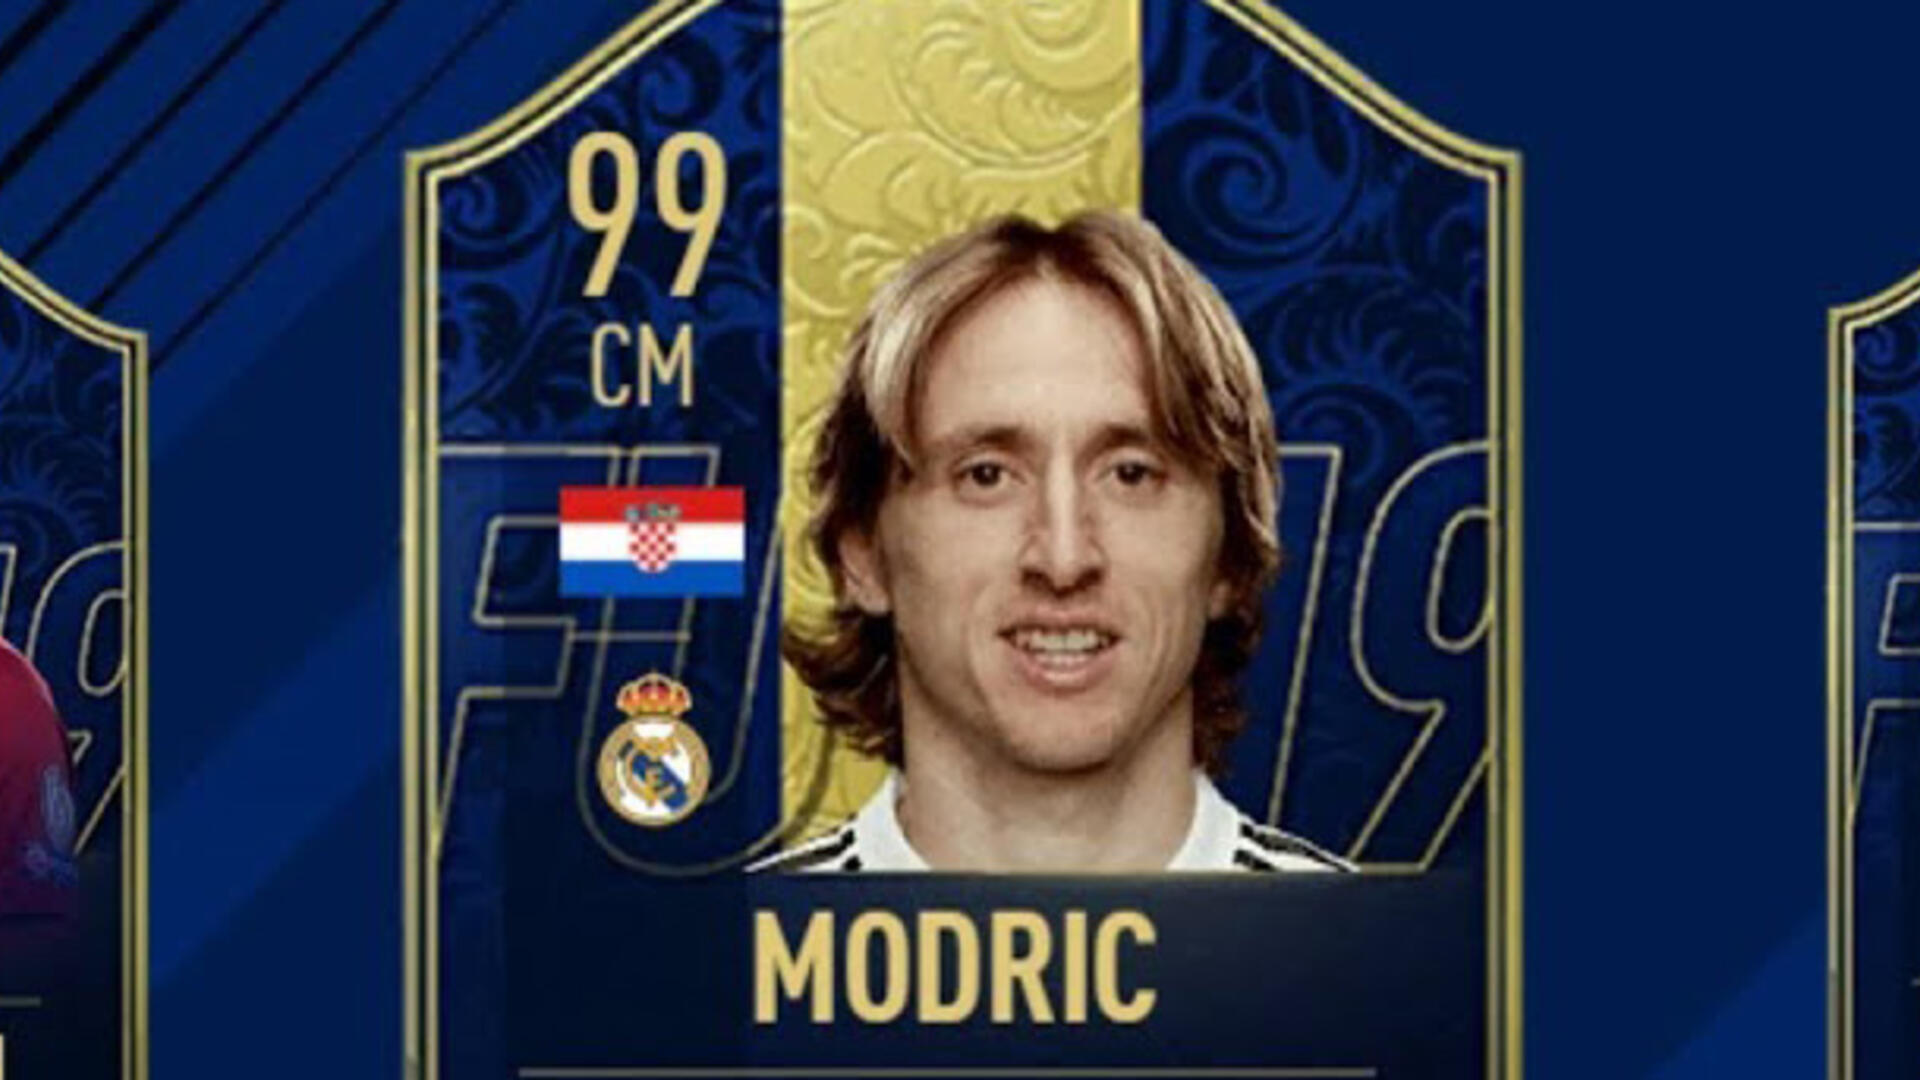 FIFA 19 Team of the Year Pack Odds are About the Same as Getting Struck by Lightning